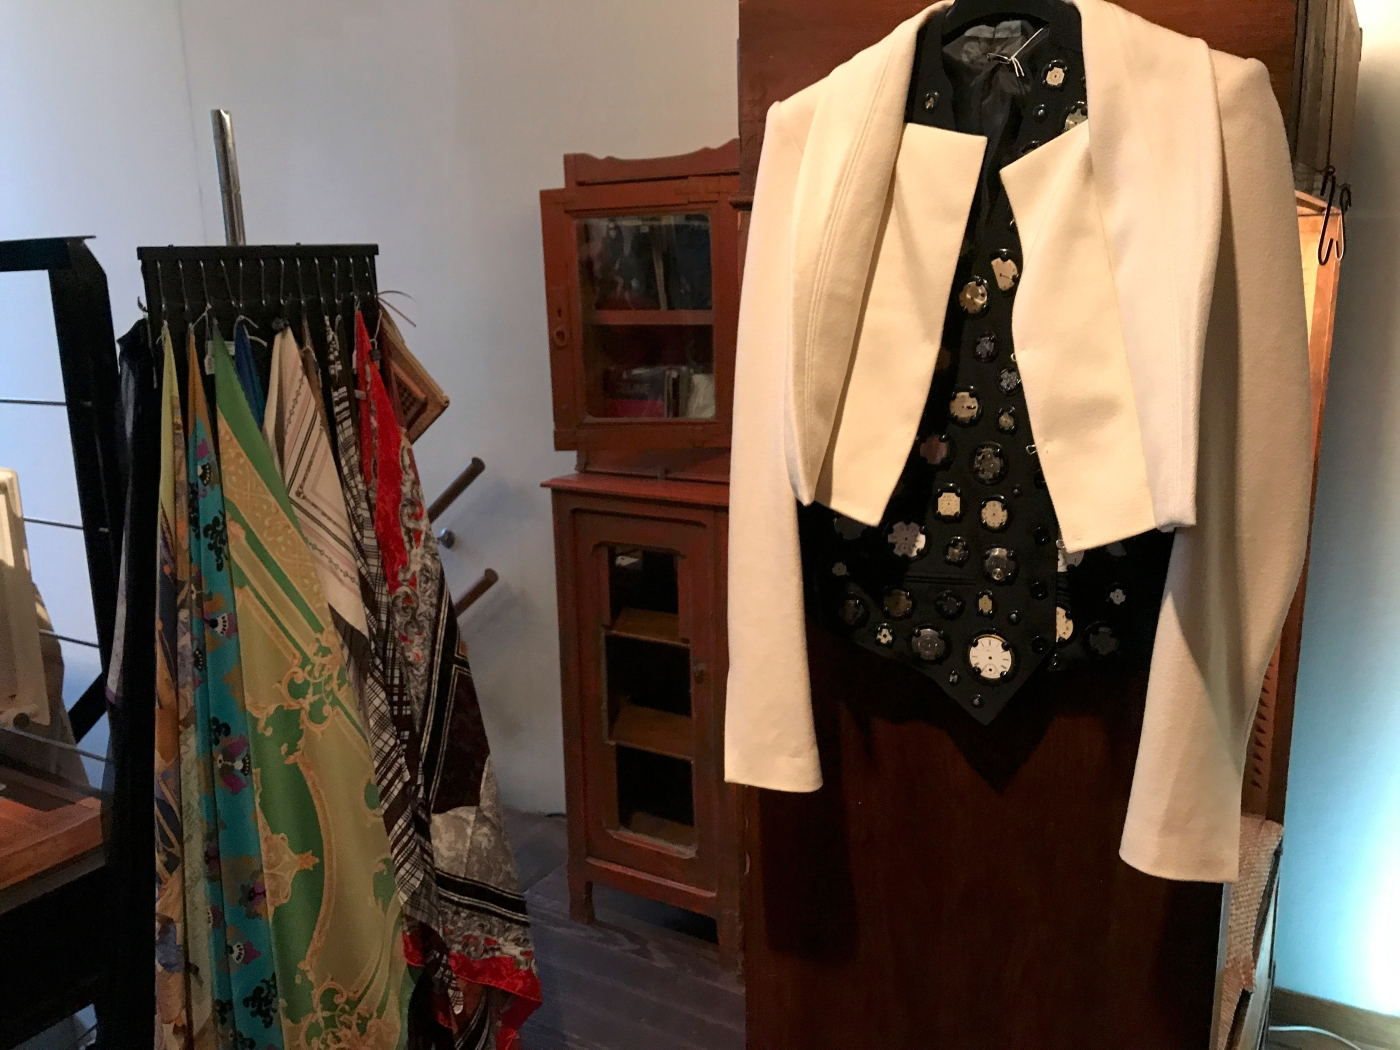 A photo of vintage Hermès scarves and a hip black clock watch vest styled with a white jacket at secondhand fashion boutique Isabelle Bajart in Brussels (Bruxelles), Belgium. Photo Courtesy of FoodWaterShoes